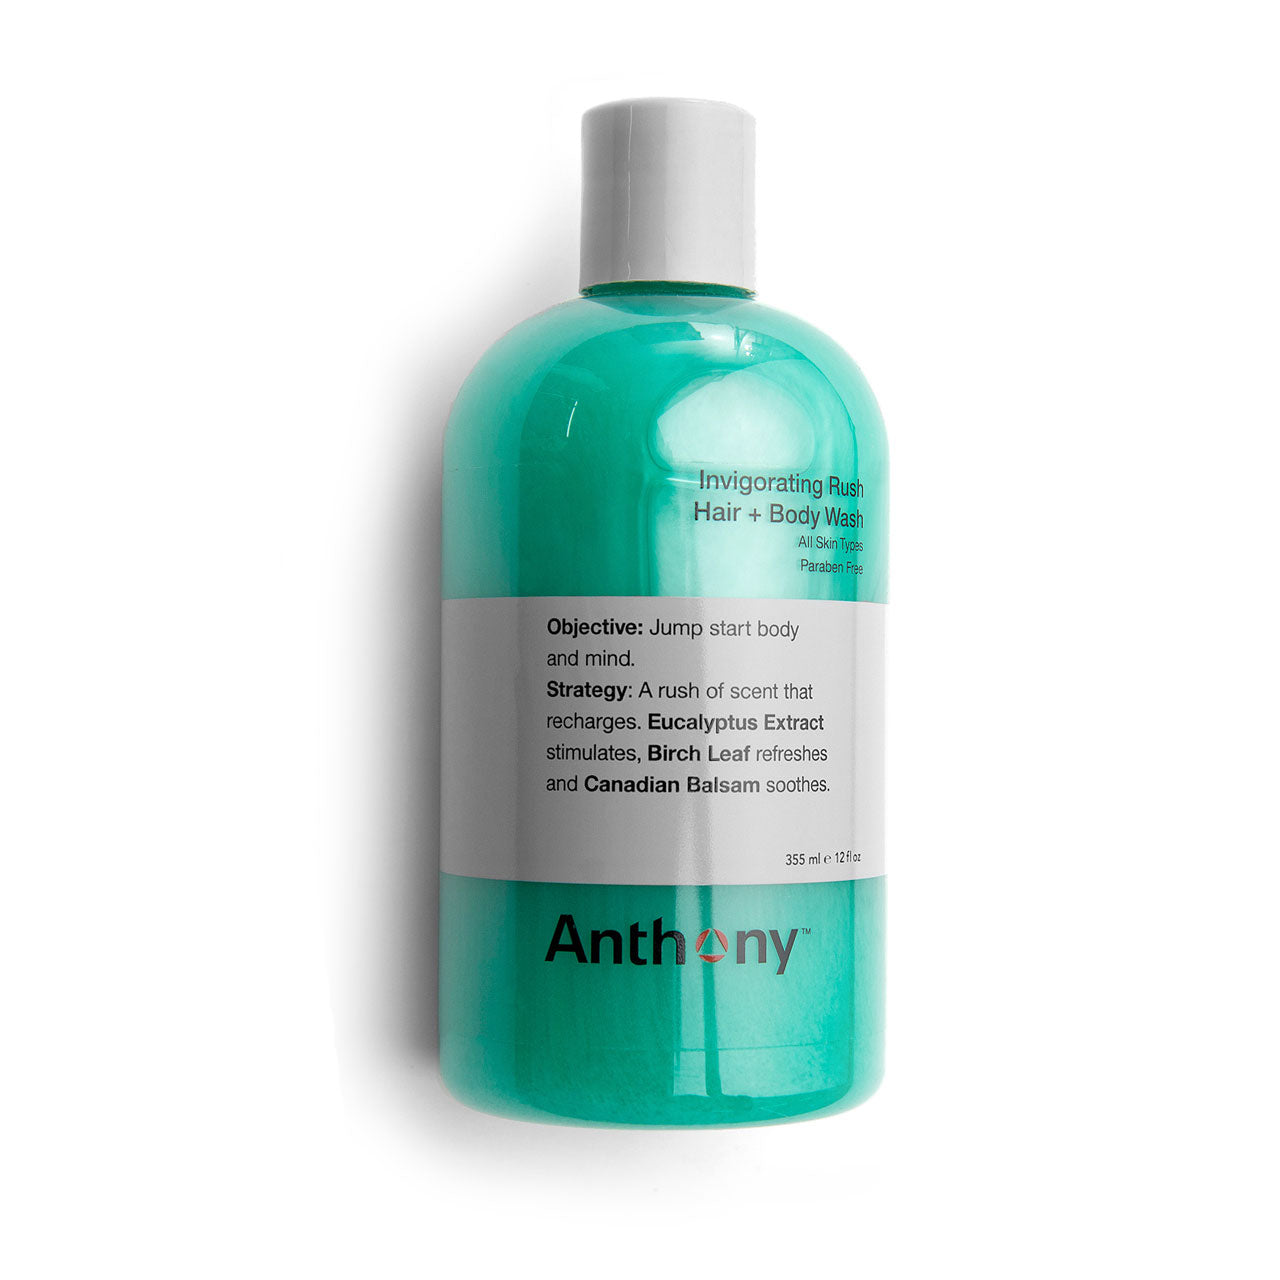 Anthony Invigorating Hair & Body Wash